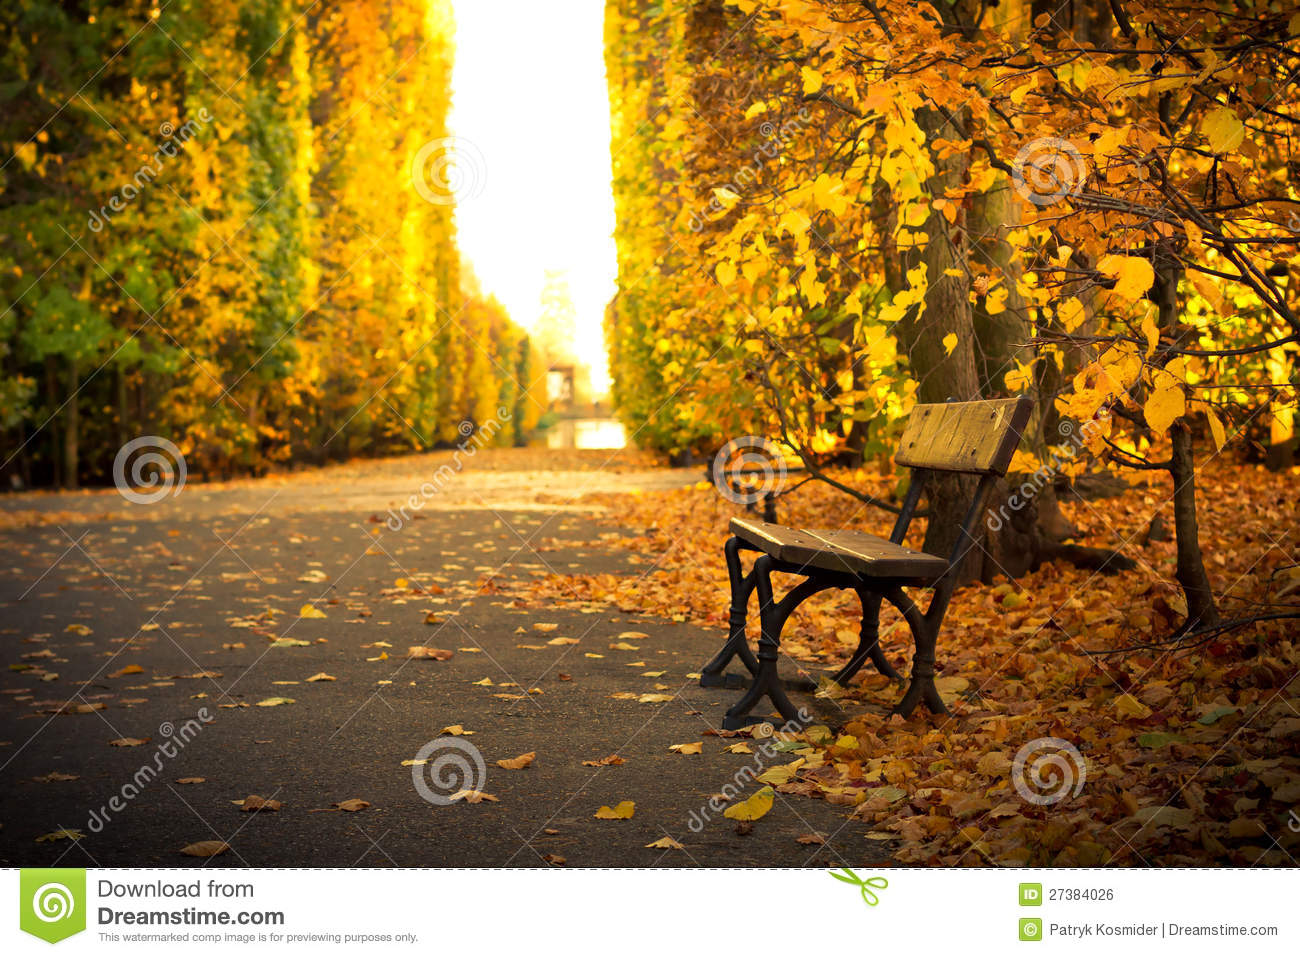 Fresh New Fall Hd Wallpapers Empty Bench In Beautiful Yellow Park Scenery Stock Photo